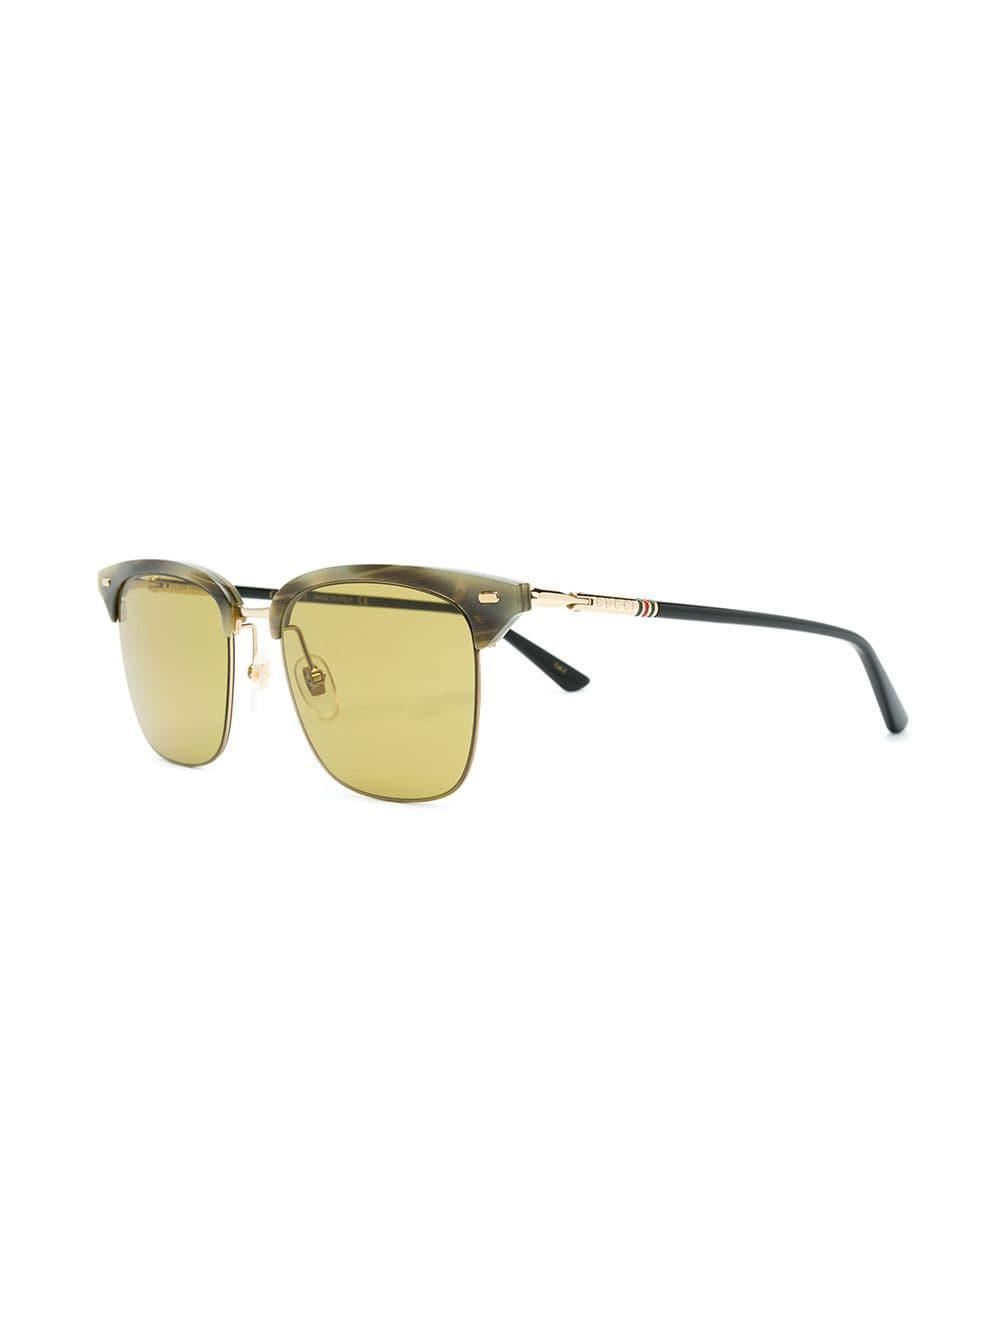 4892b44c519d6 Gucci Clubmaster Style Sunglasses in Gray for Men - Lyst